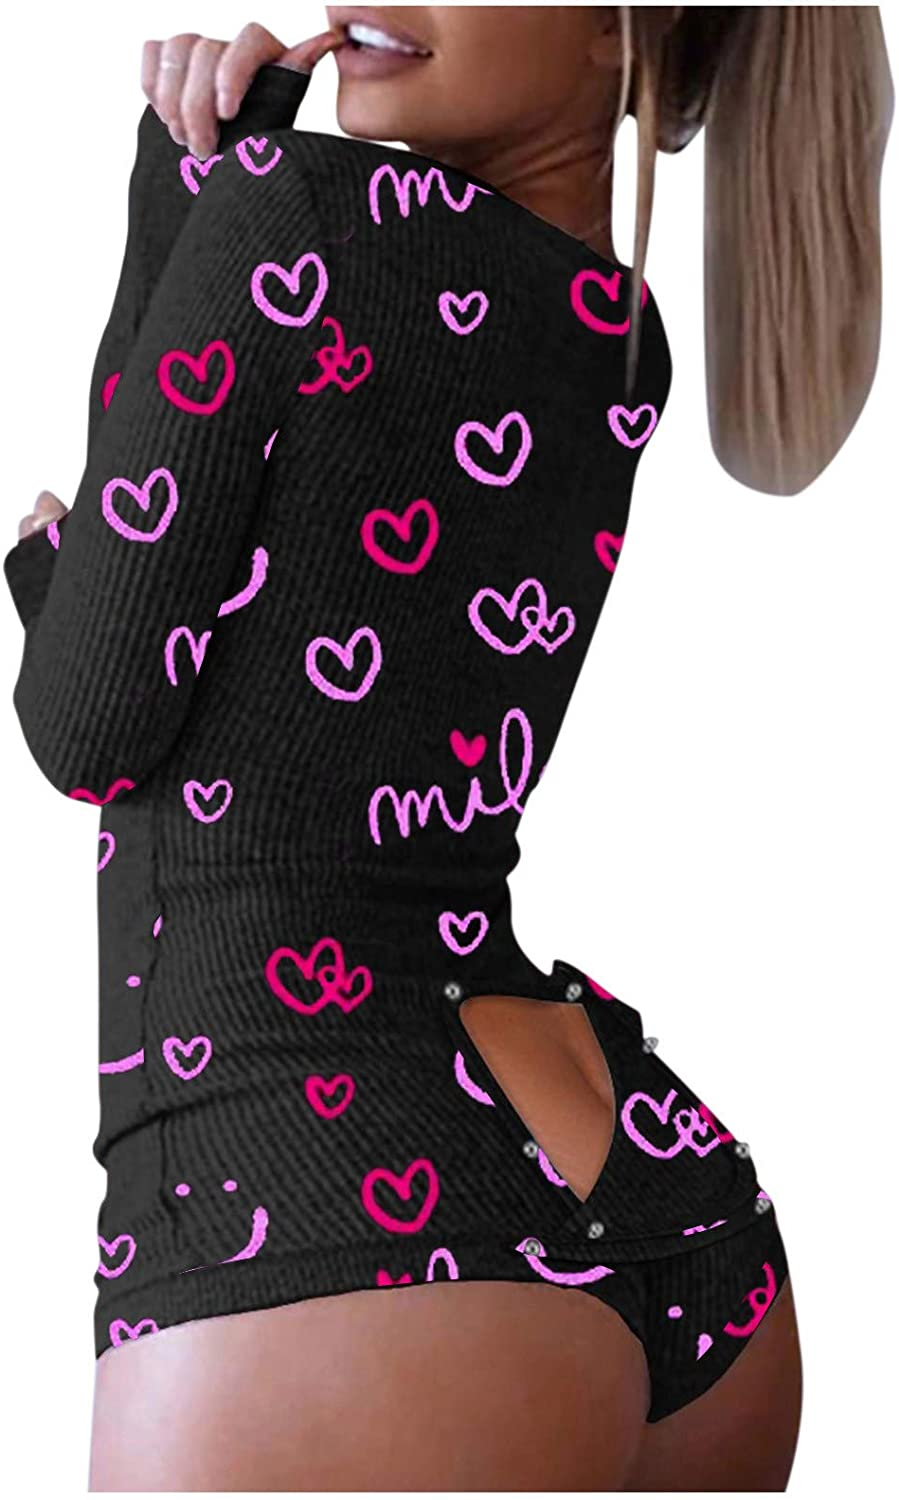 Women Jumpsuit Sexy,Womens Sexy V-Neck Long Sleeve One Piece Shorts Romper Bodysuit Funny Print with Drop Seat Butt Flap